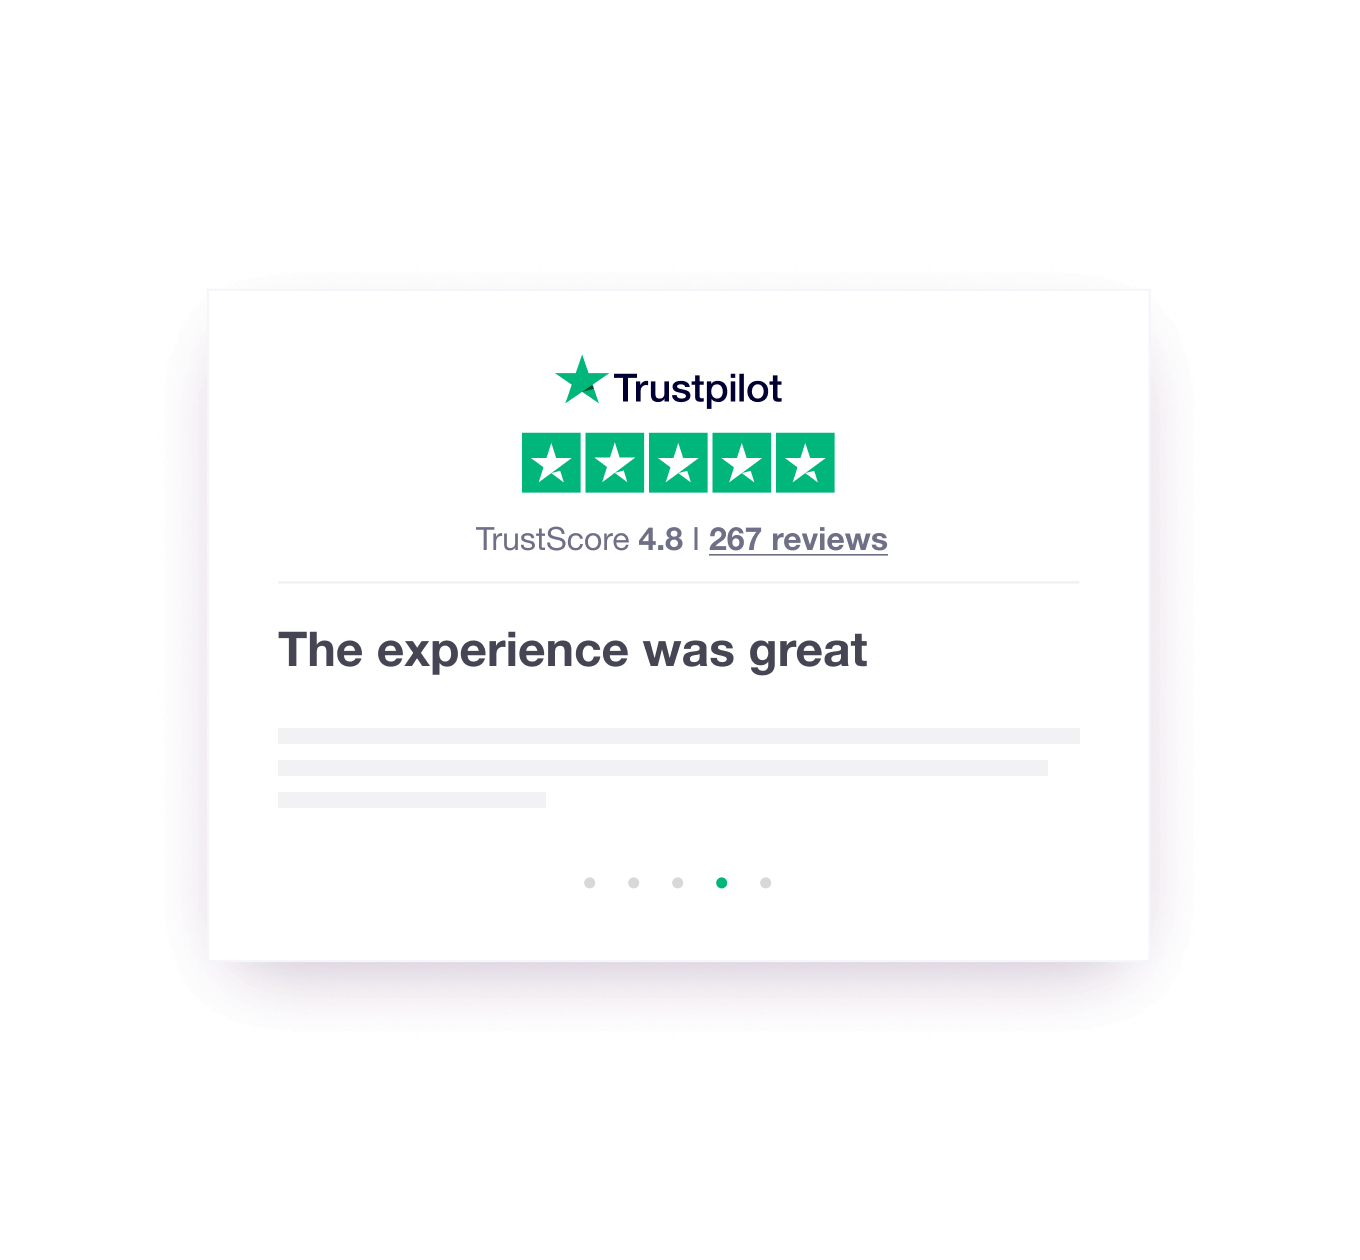 Trustpilot Reviews, the experience was great